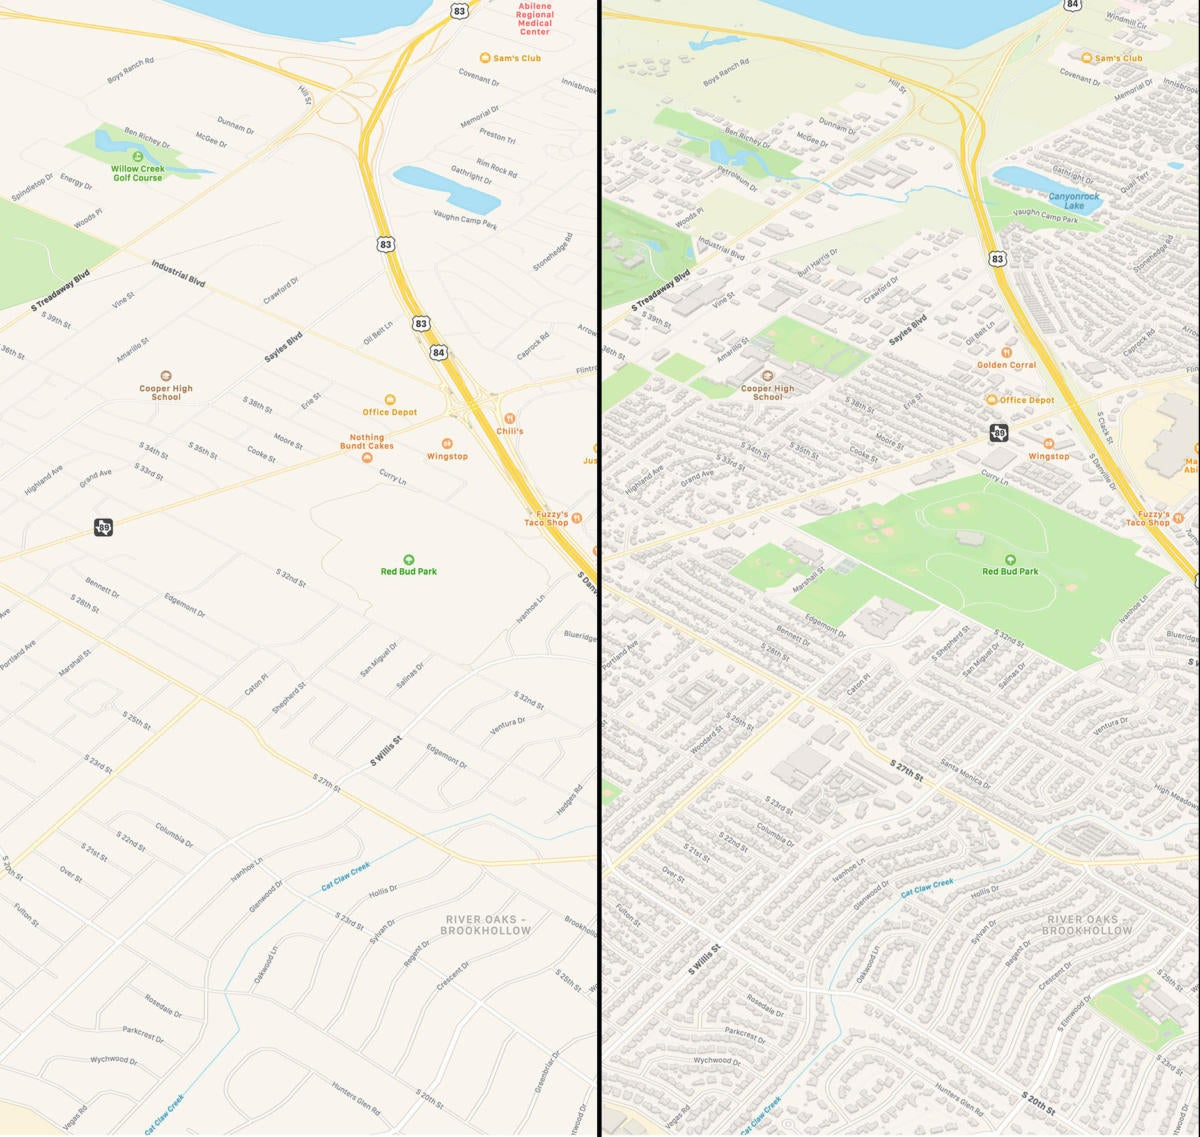 What's new in Apple Maps in iOS 13 | Macworld